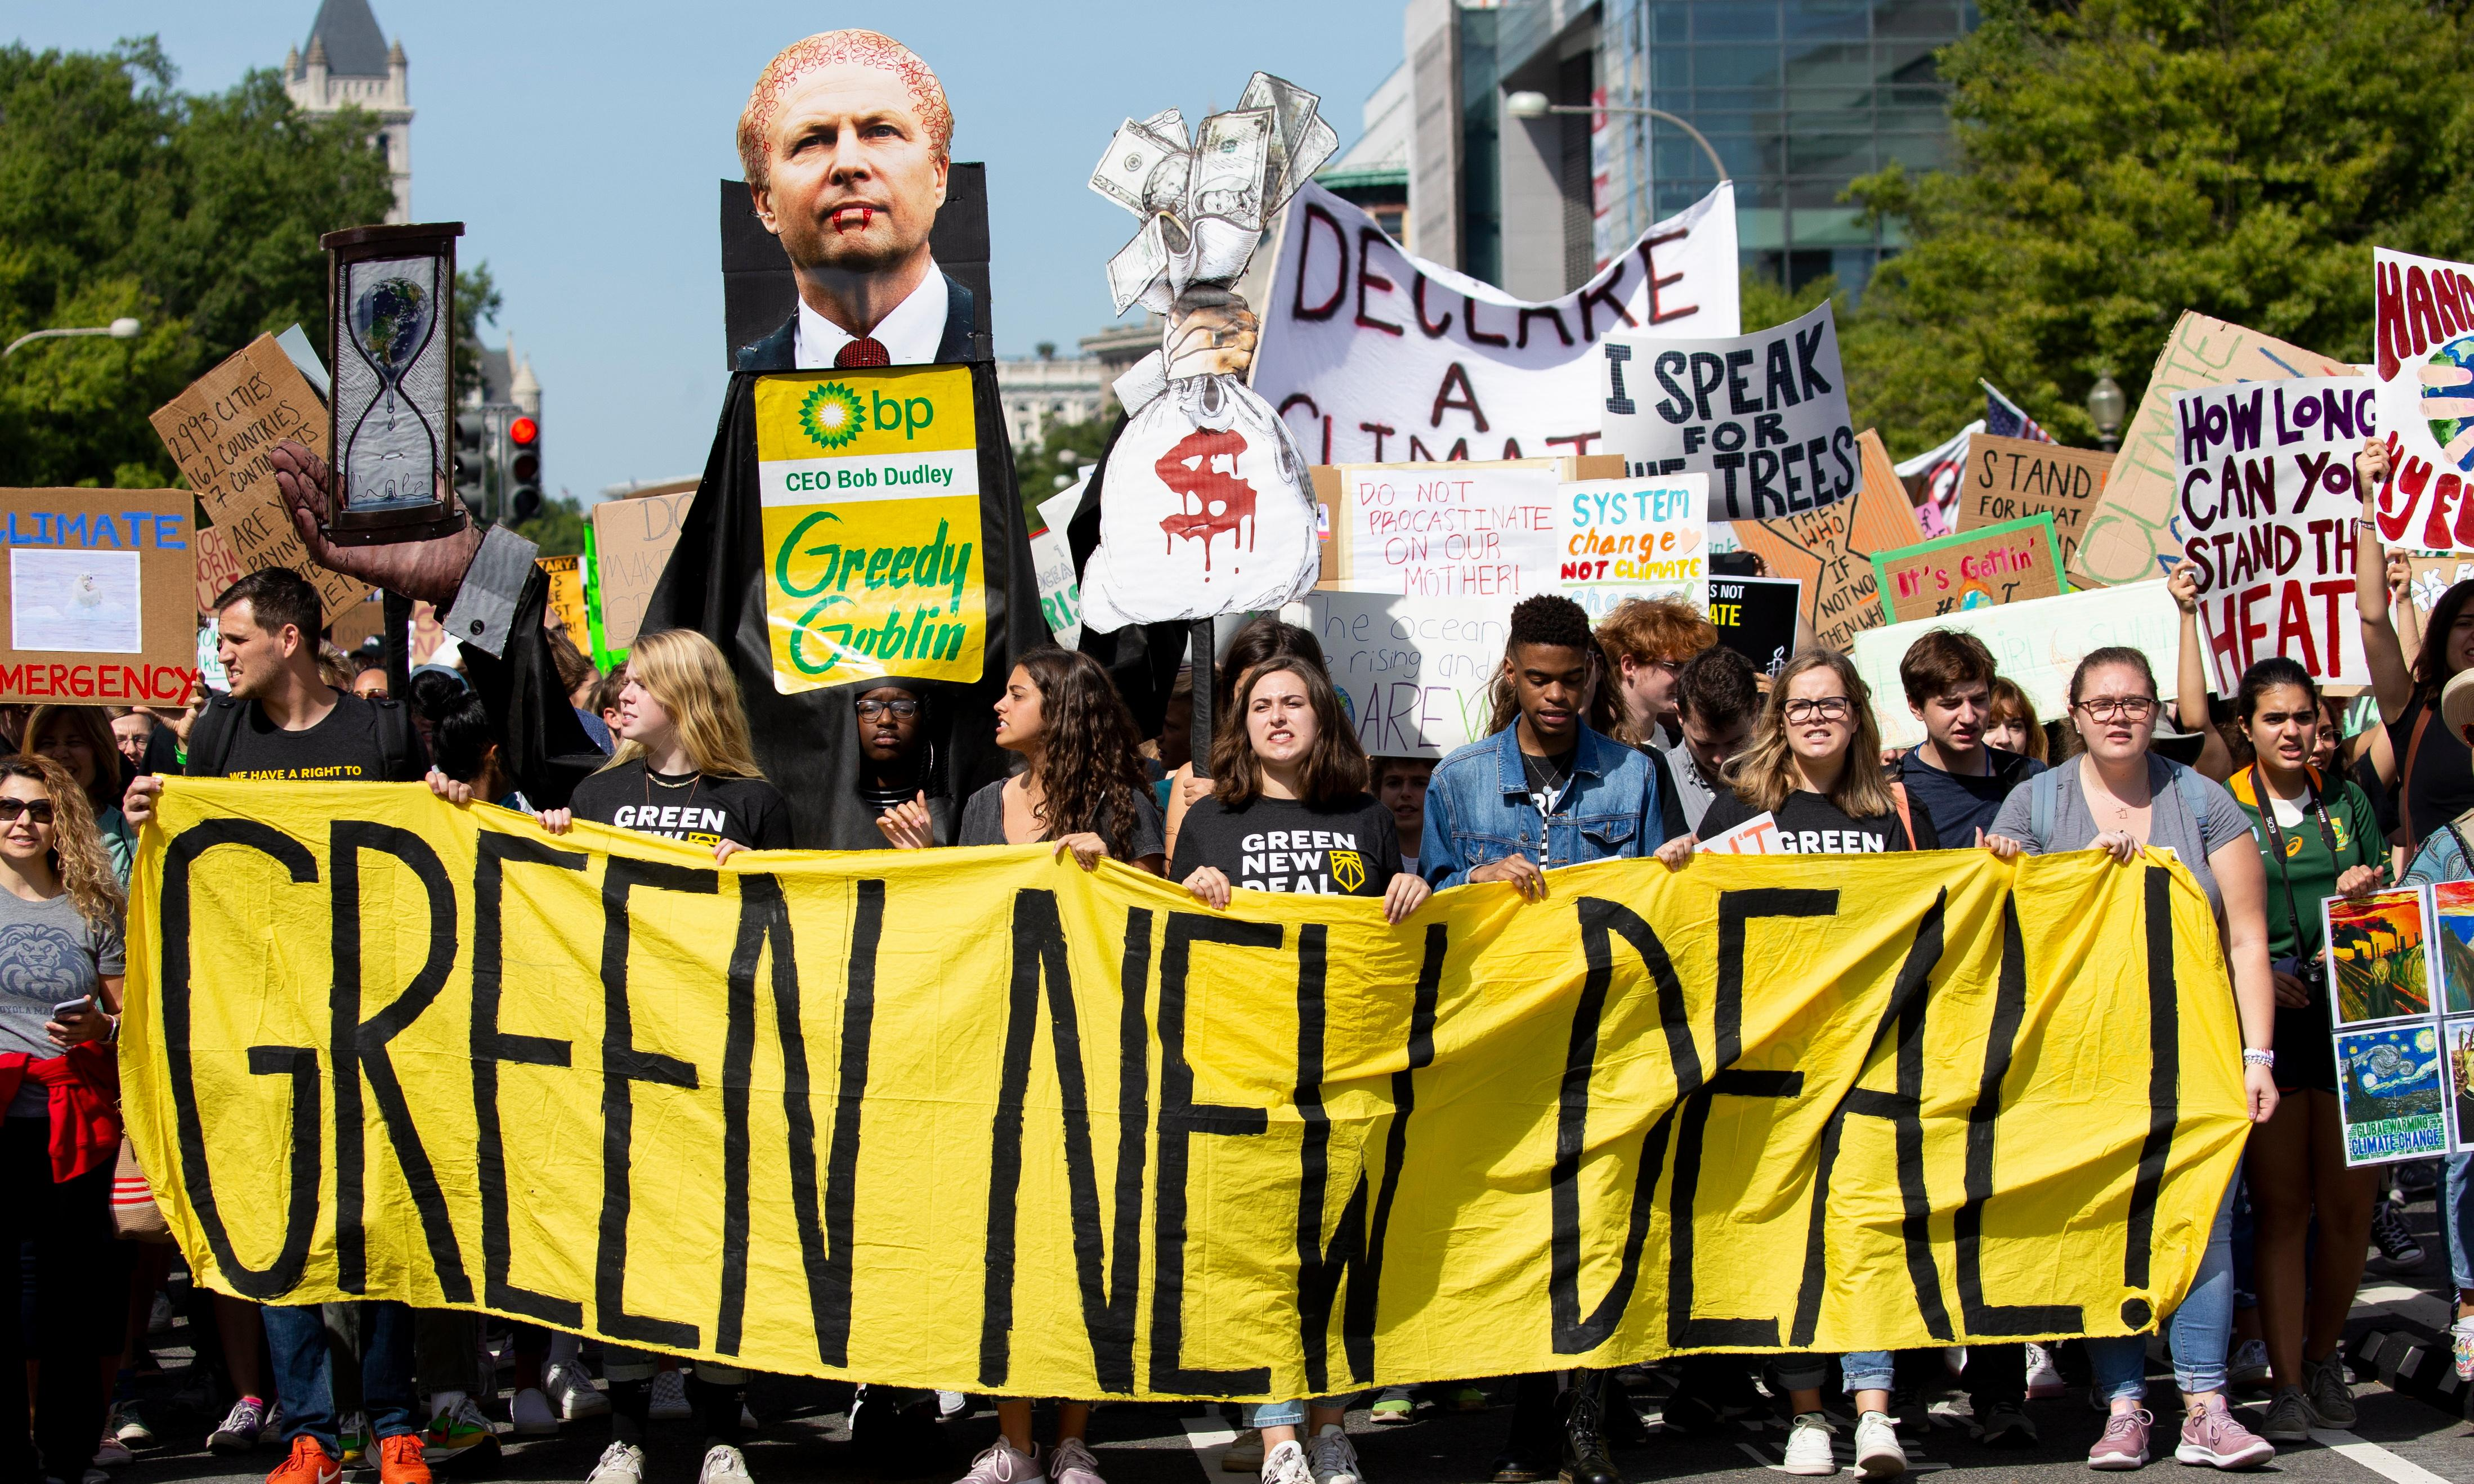 A recession is coming. When it does, we need to demand a Green New Deal